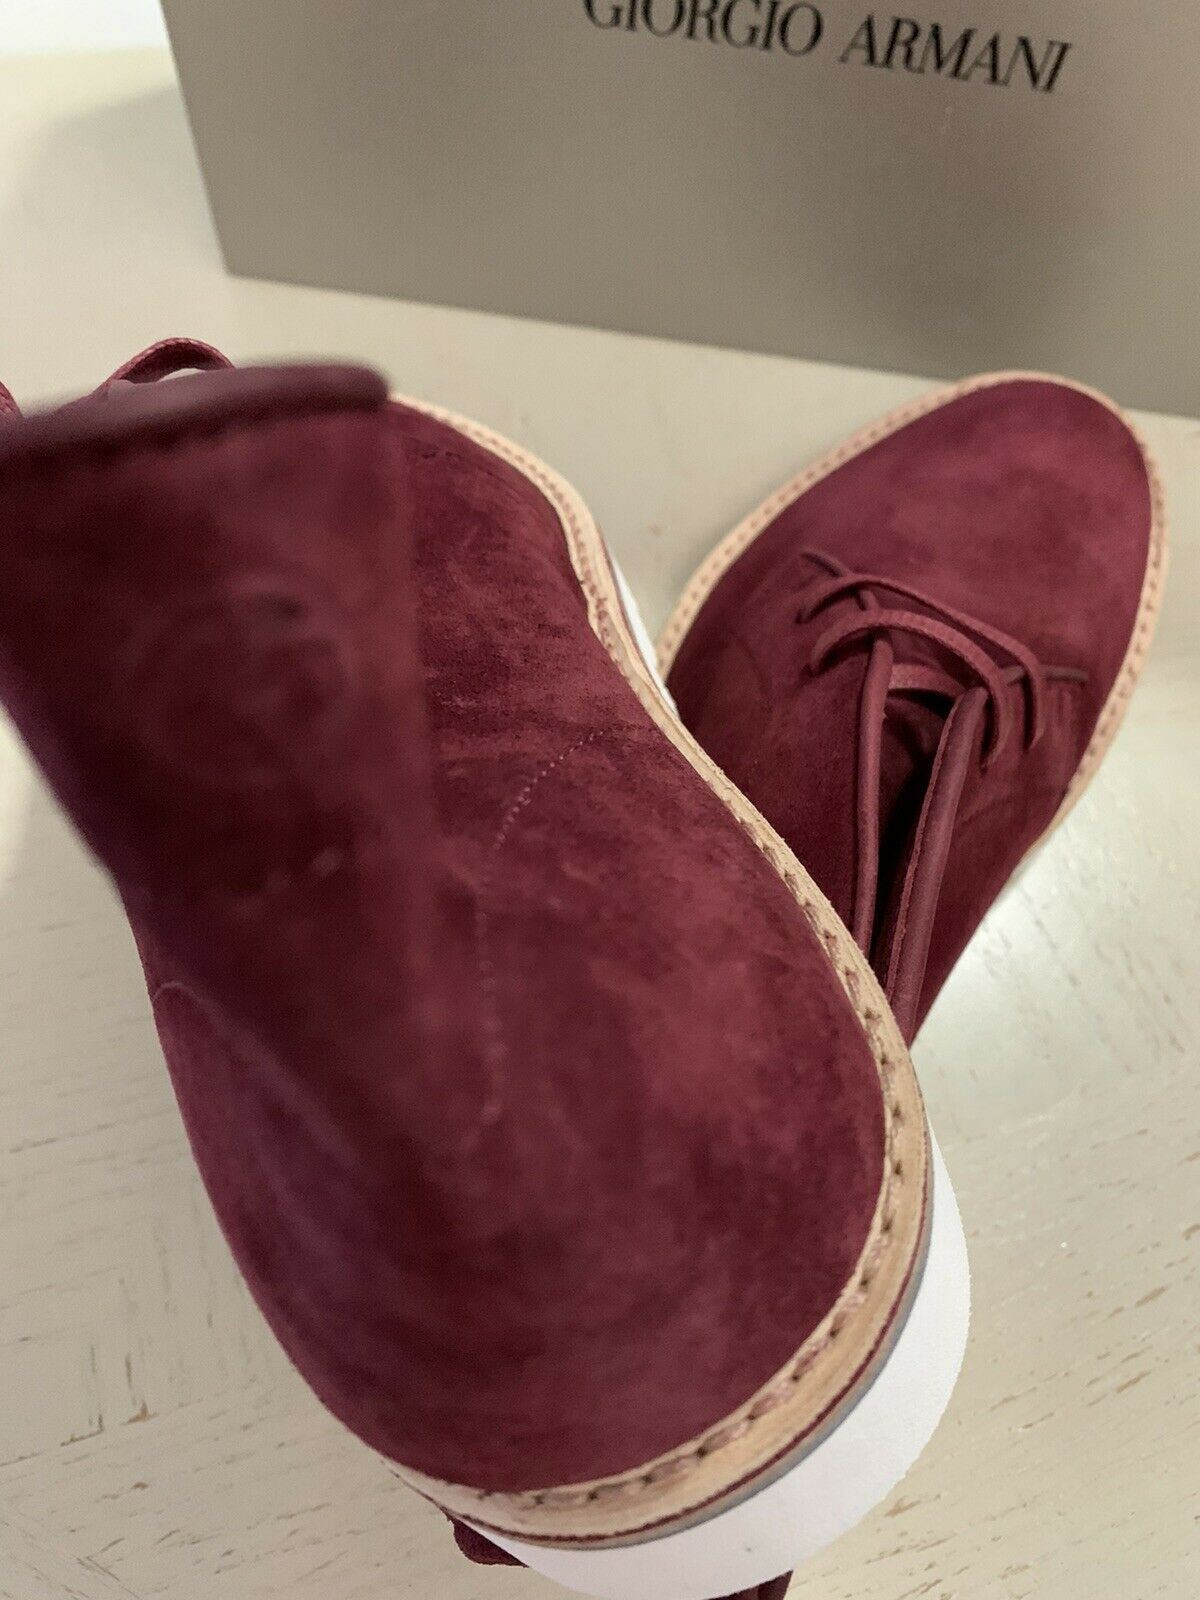 New $695 Giorgio Armani Mens Suede Boot Shoes Burgundy 11.5 US/10.5 UK X2M268